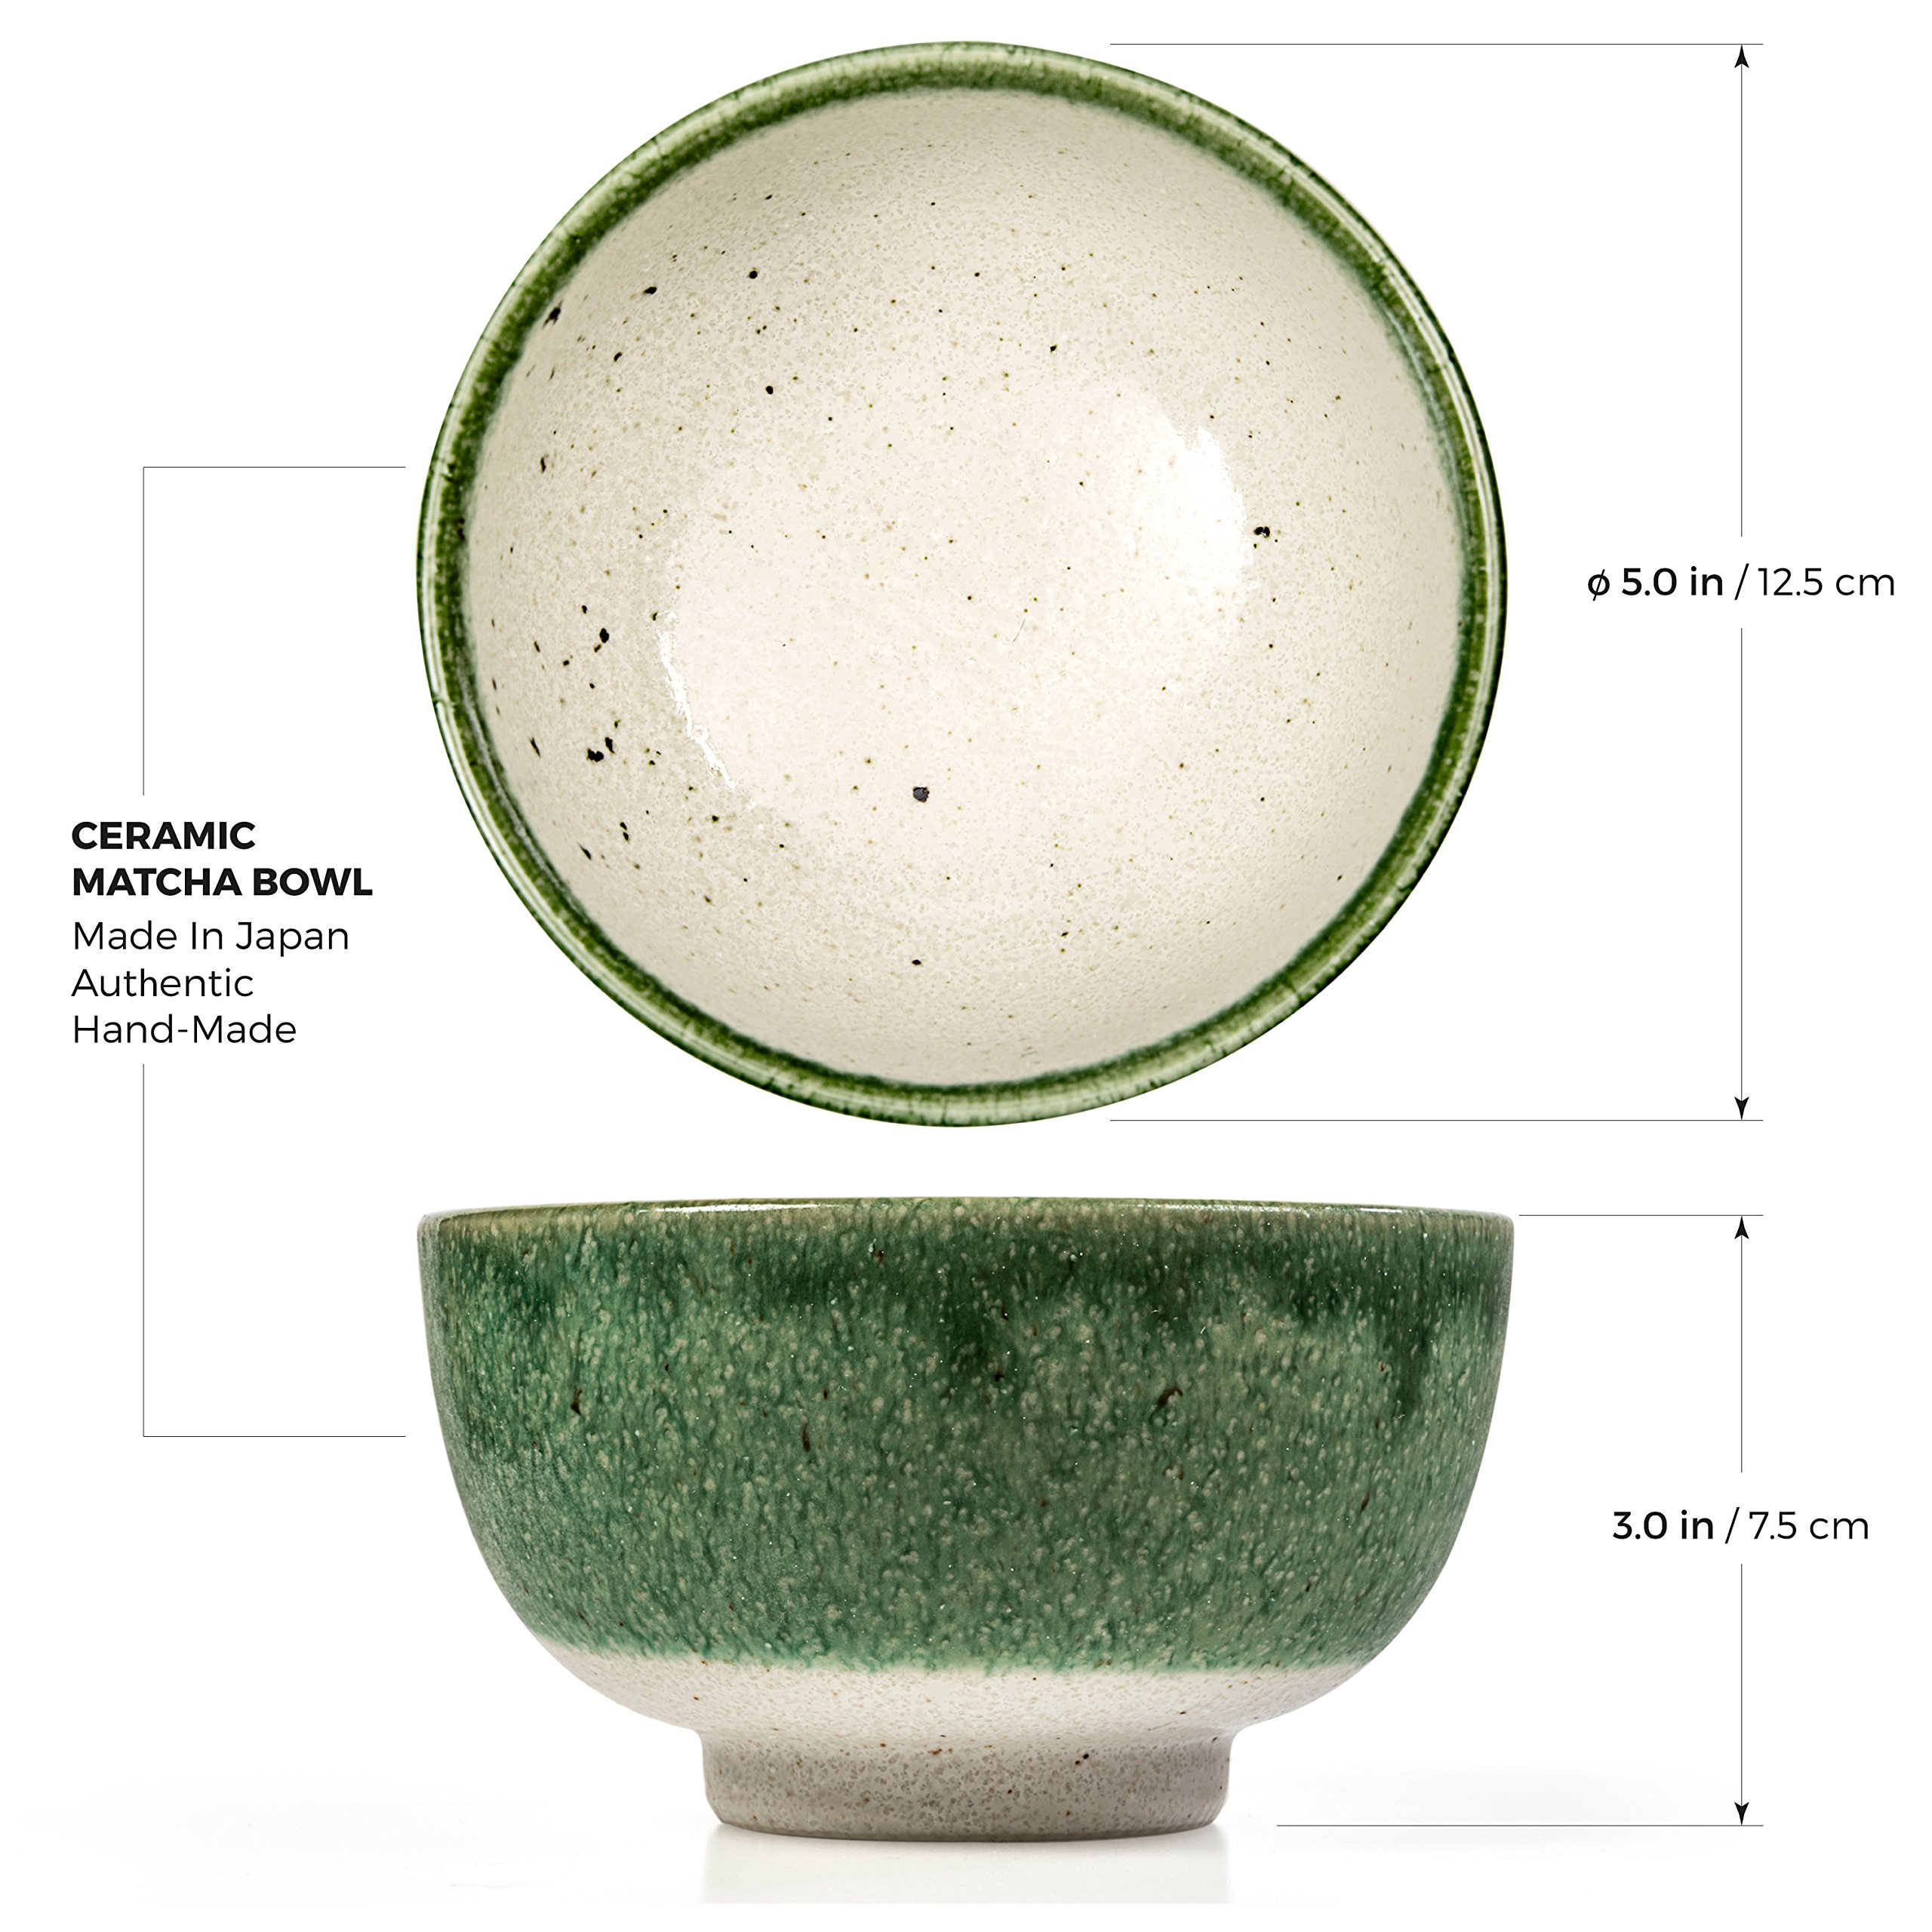 Tealyra - Matcha Bowl - Authentic Ceramic Made in Japan - Chawan from Japanese Master-Craft - Matcha Tea Cup Ceremony Use - Green by Tealyra (Image #3)